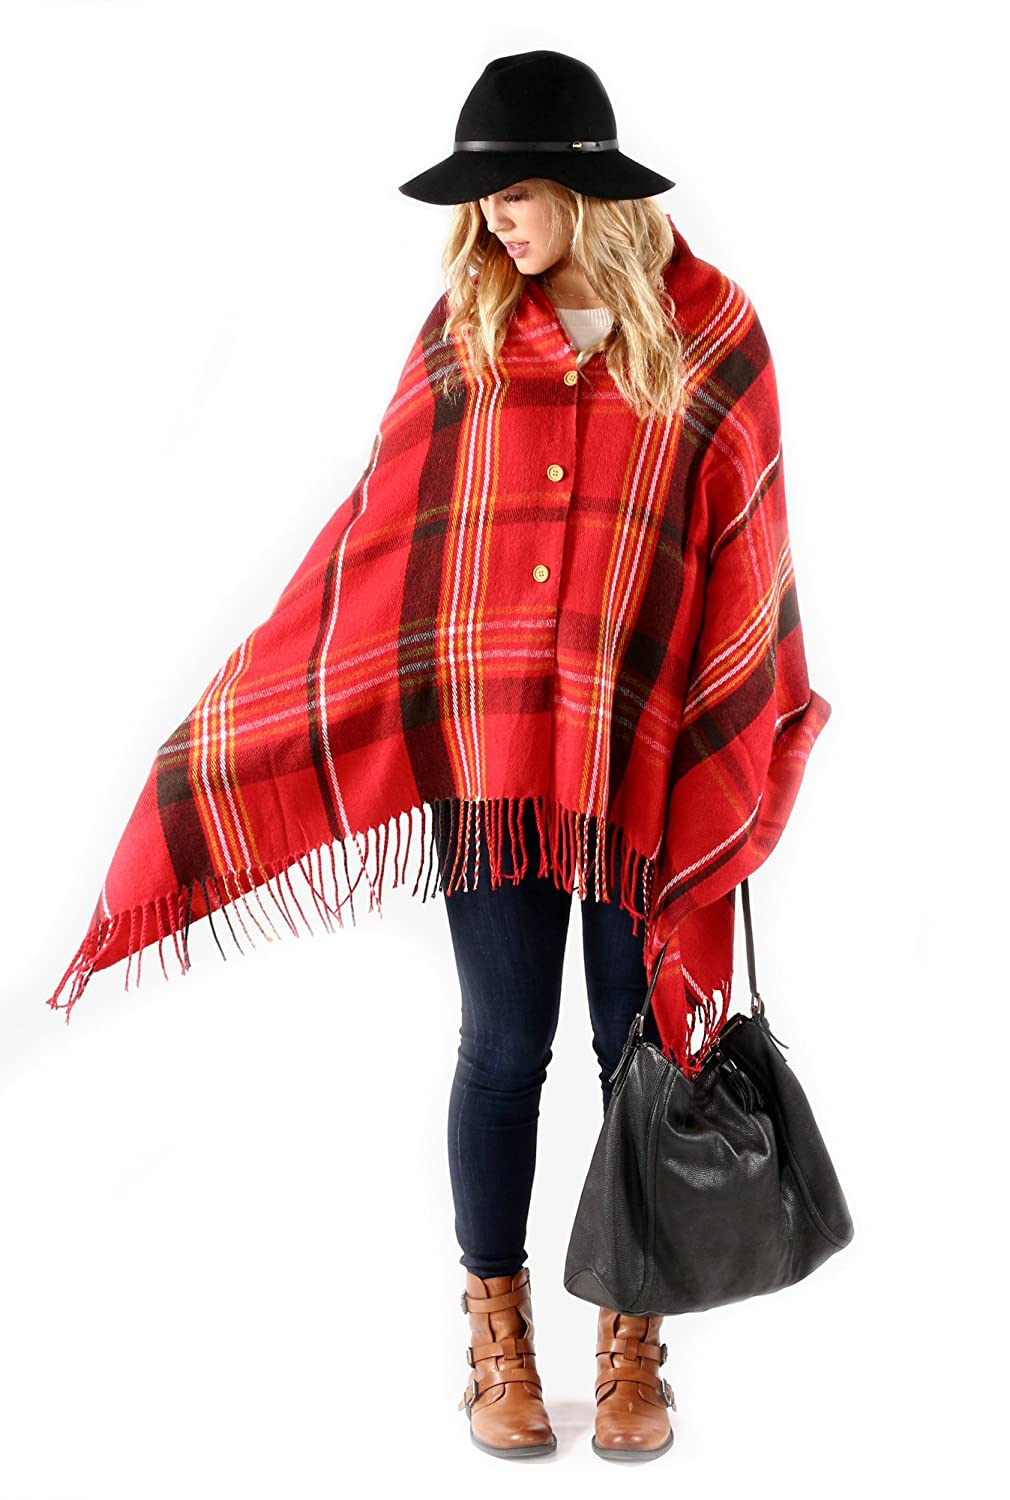 Pretty Simple Plaid Button Blanket Scarf Shawl Women's Wrap 5M-V2G8-KE2L